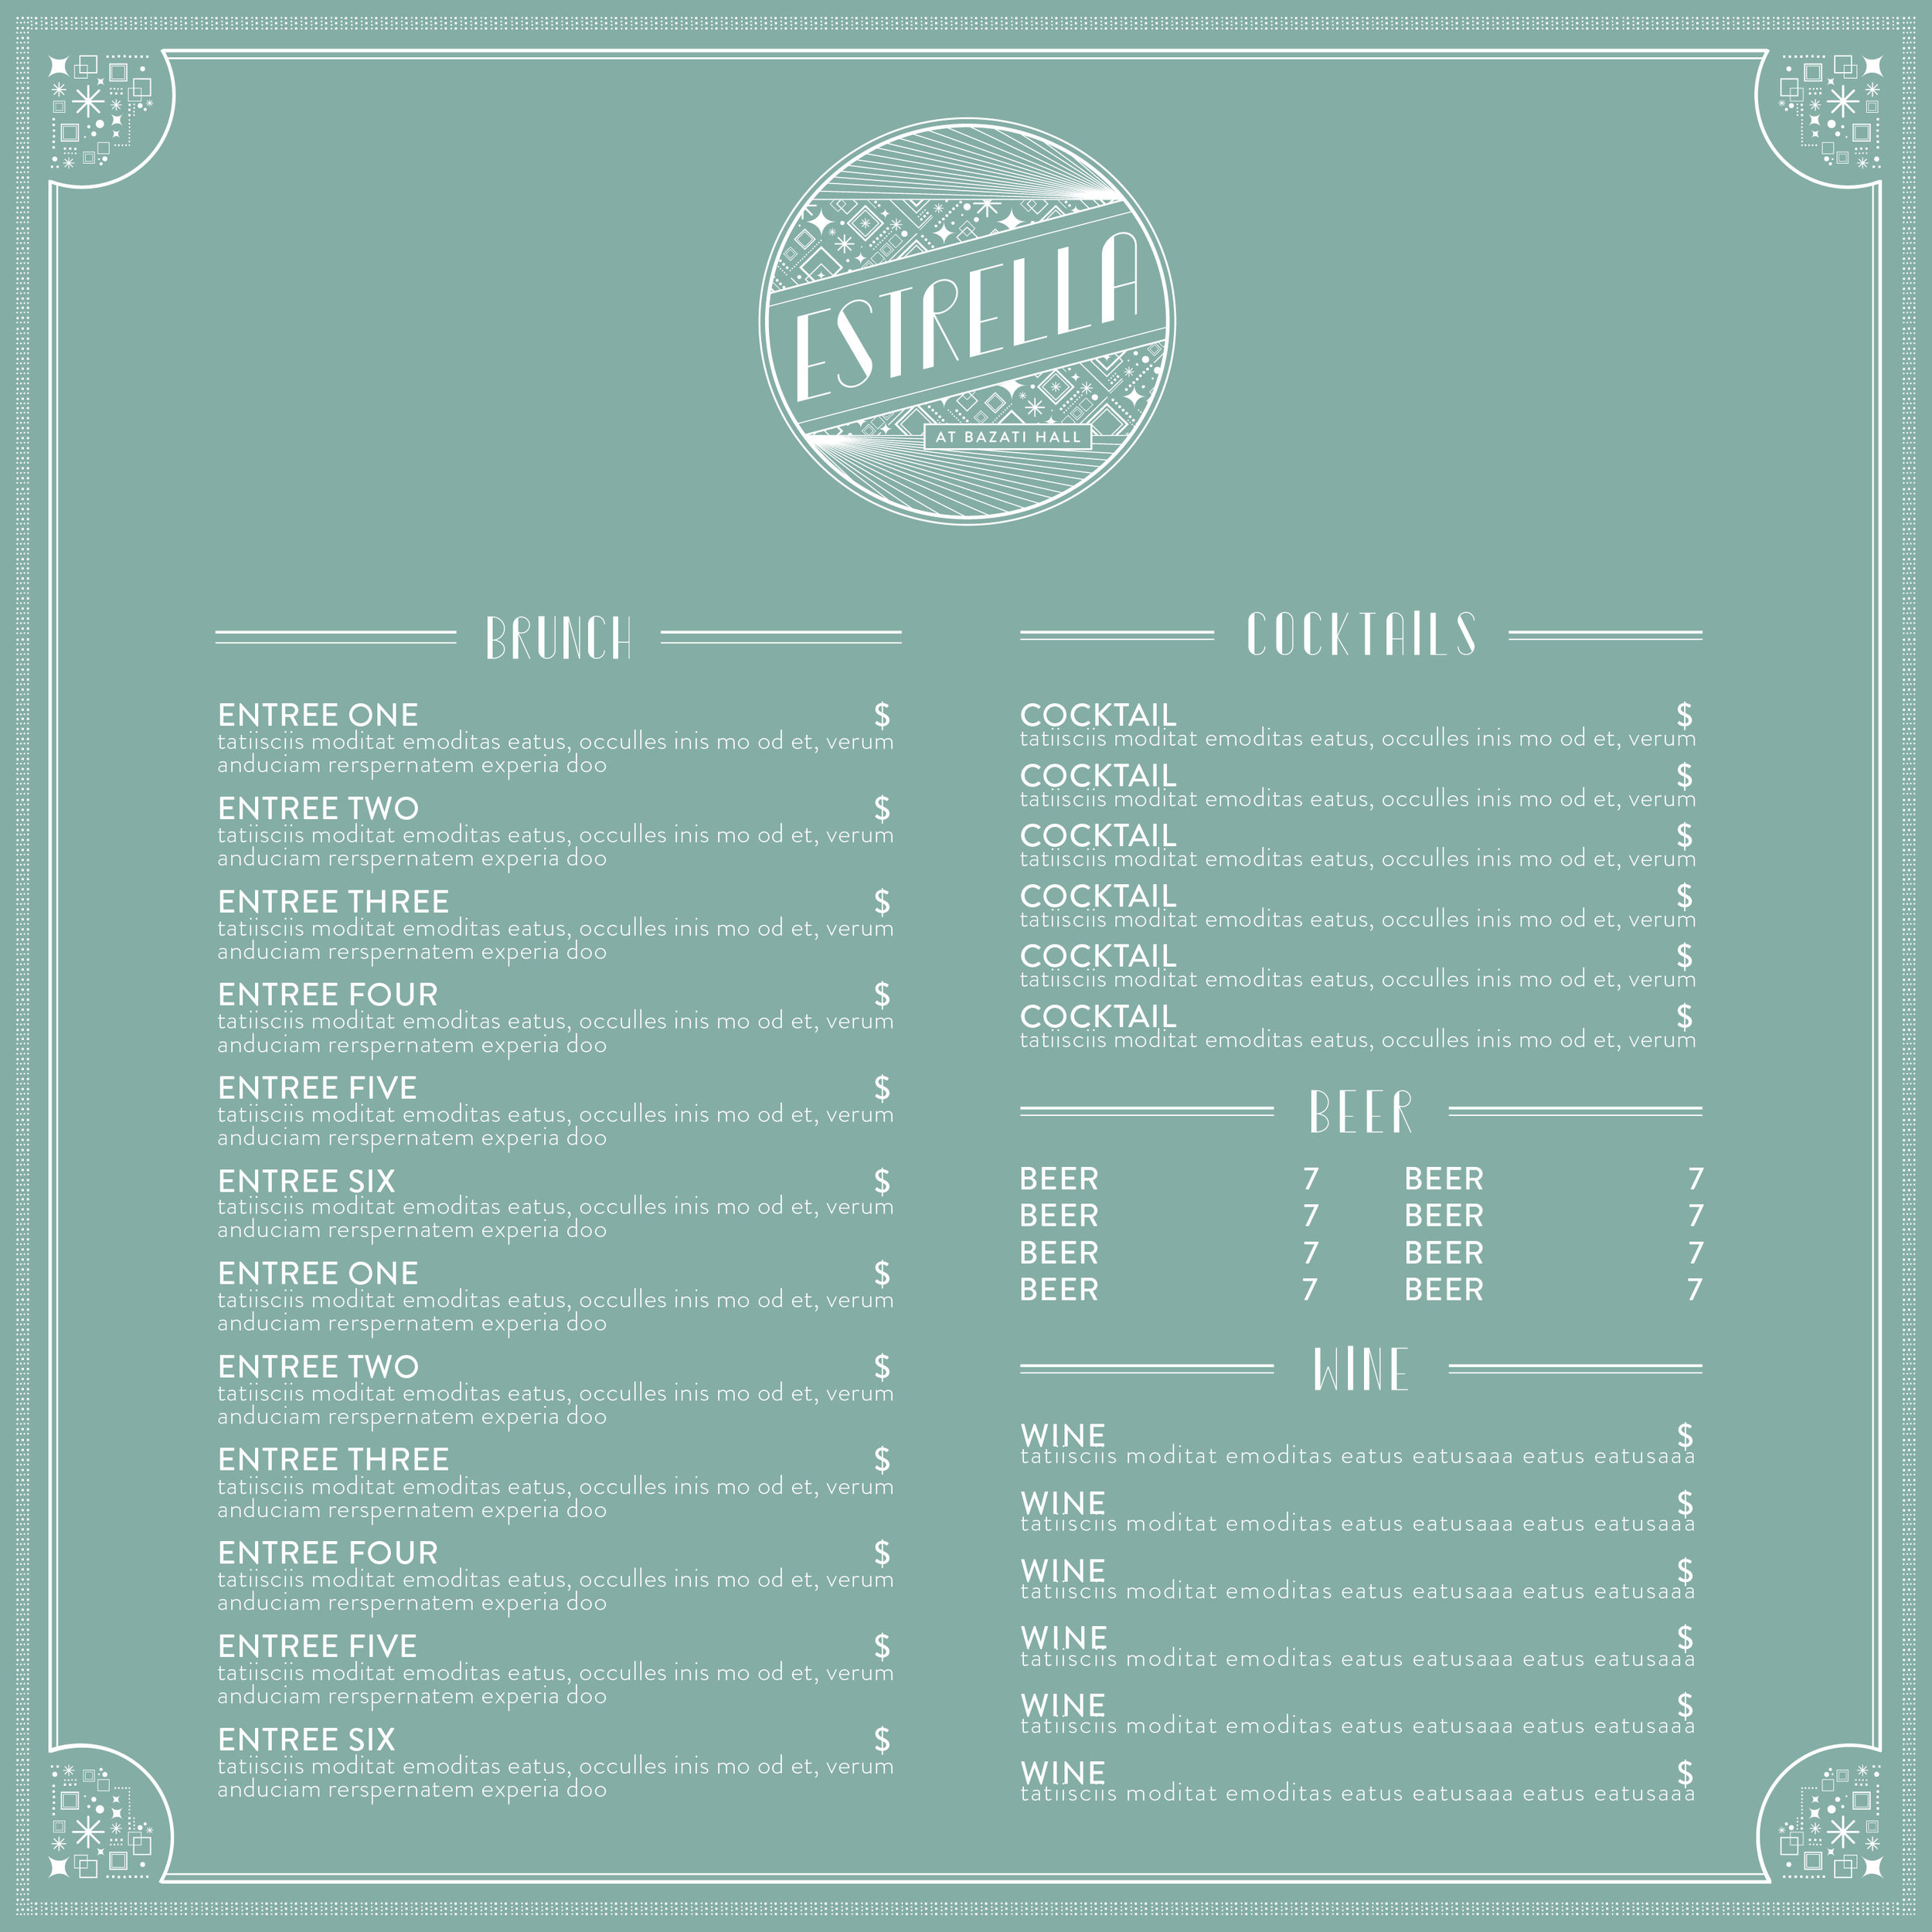 0318-est-bh-menu-brunch.jpg